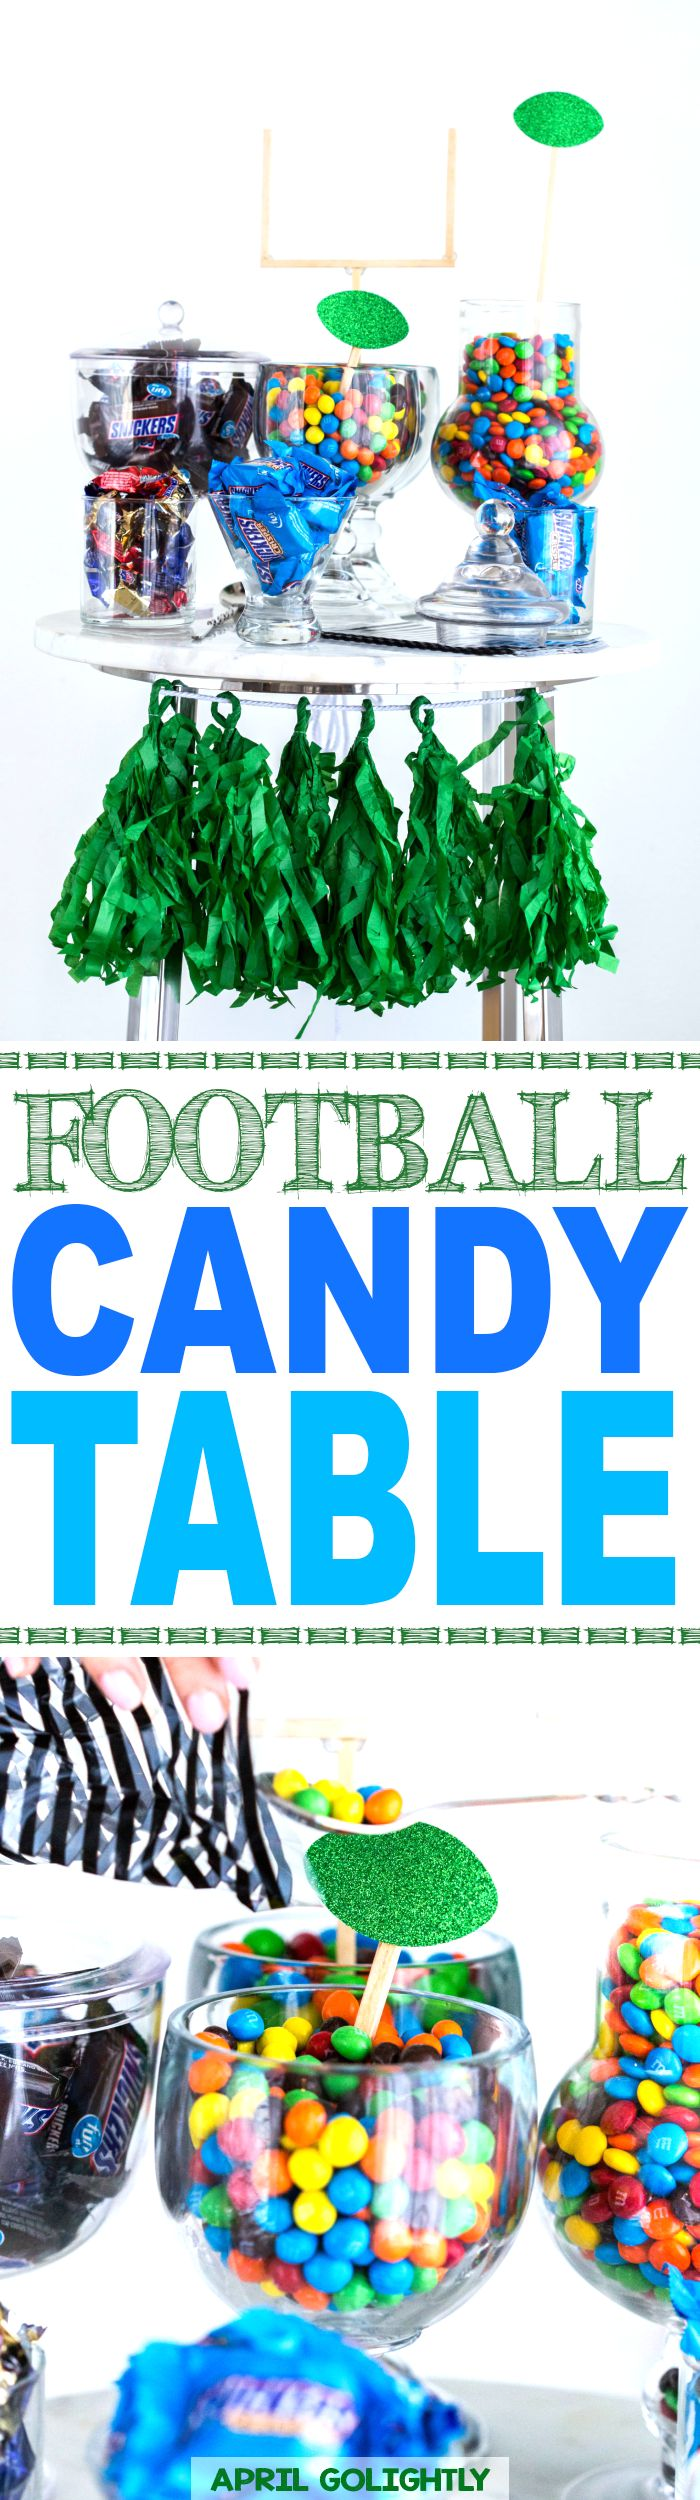 Football Party Candle Table for your sweet tooth and football loving guests and your next tailgate party  #sweetestwaytoscore @mmschocolate AD